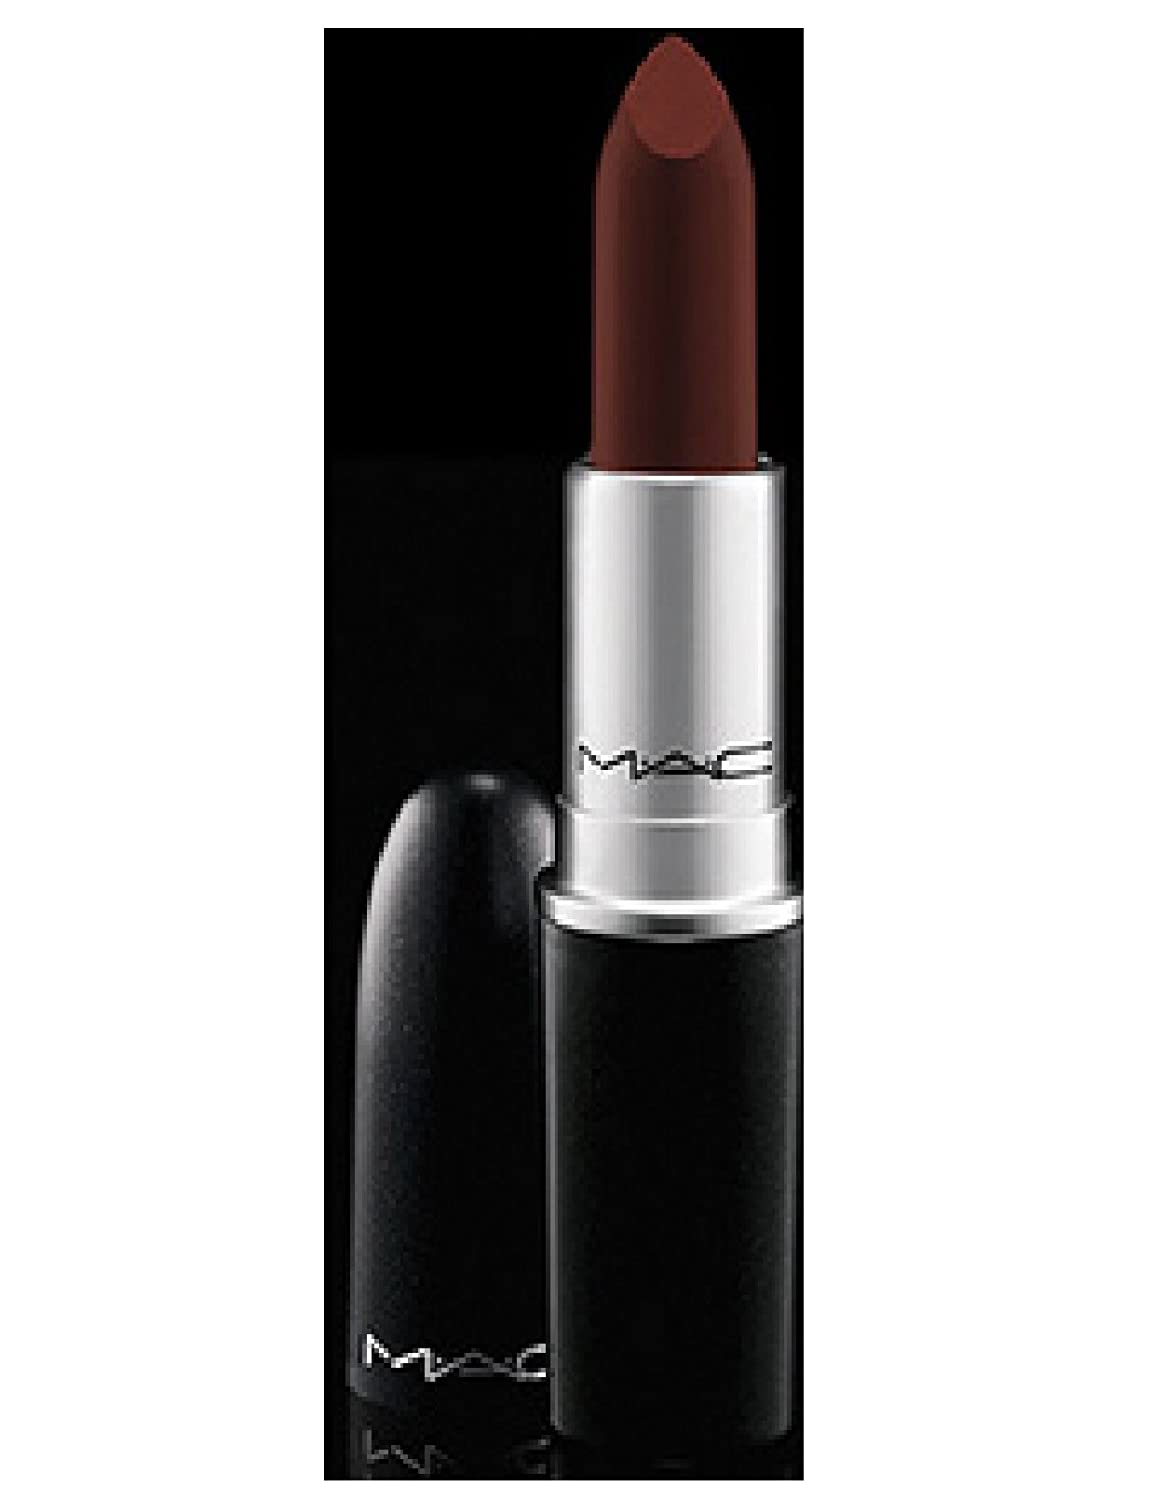 Fabuleux Amazon.com : Mac Lipstick- MATTE ROYAL by MAC : Beauty VK87